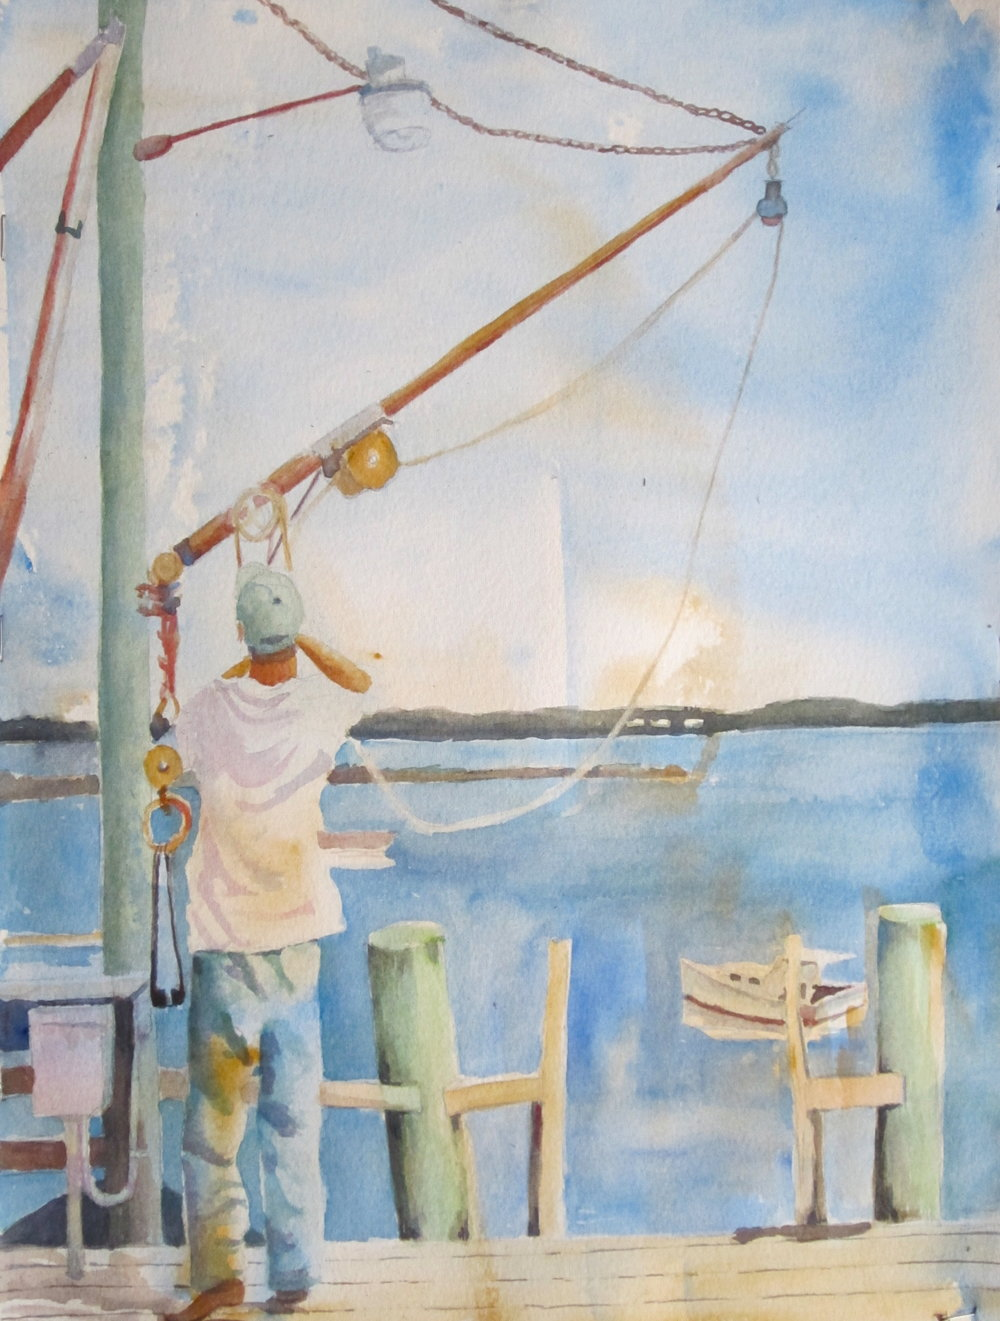 Voila! The Bait Hauler is complete! Leaving white spaces, using complementary colors and 'going with the flow' resulted in a great plein air painting.